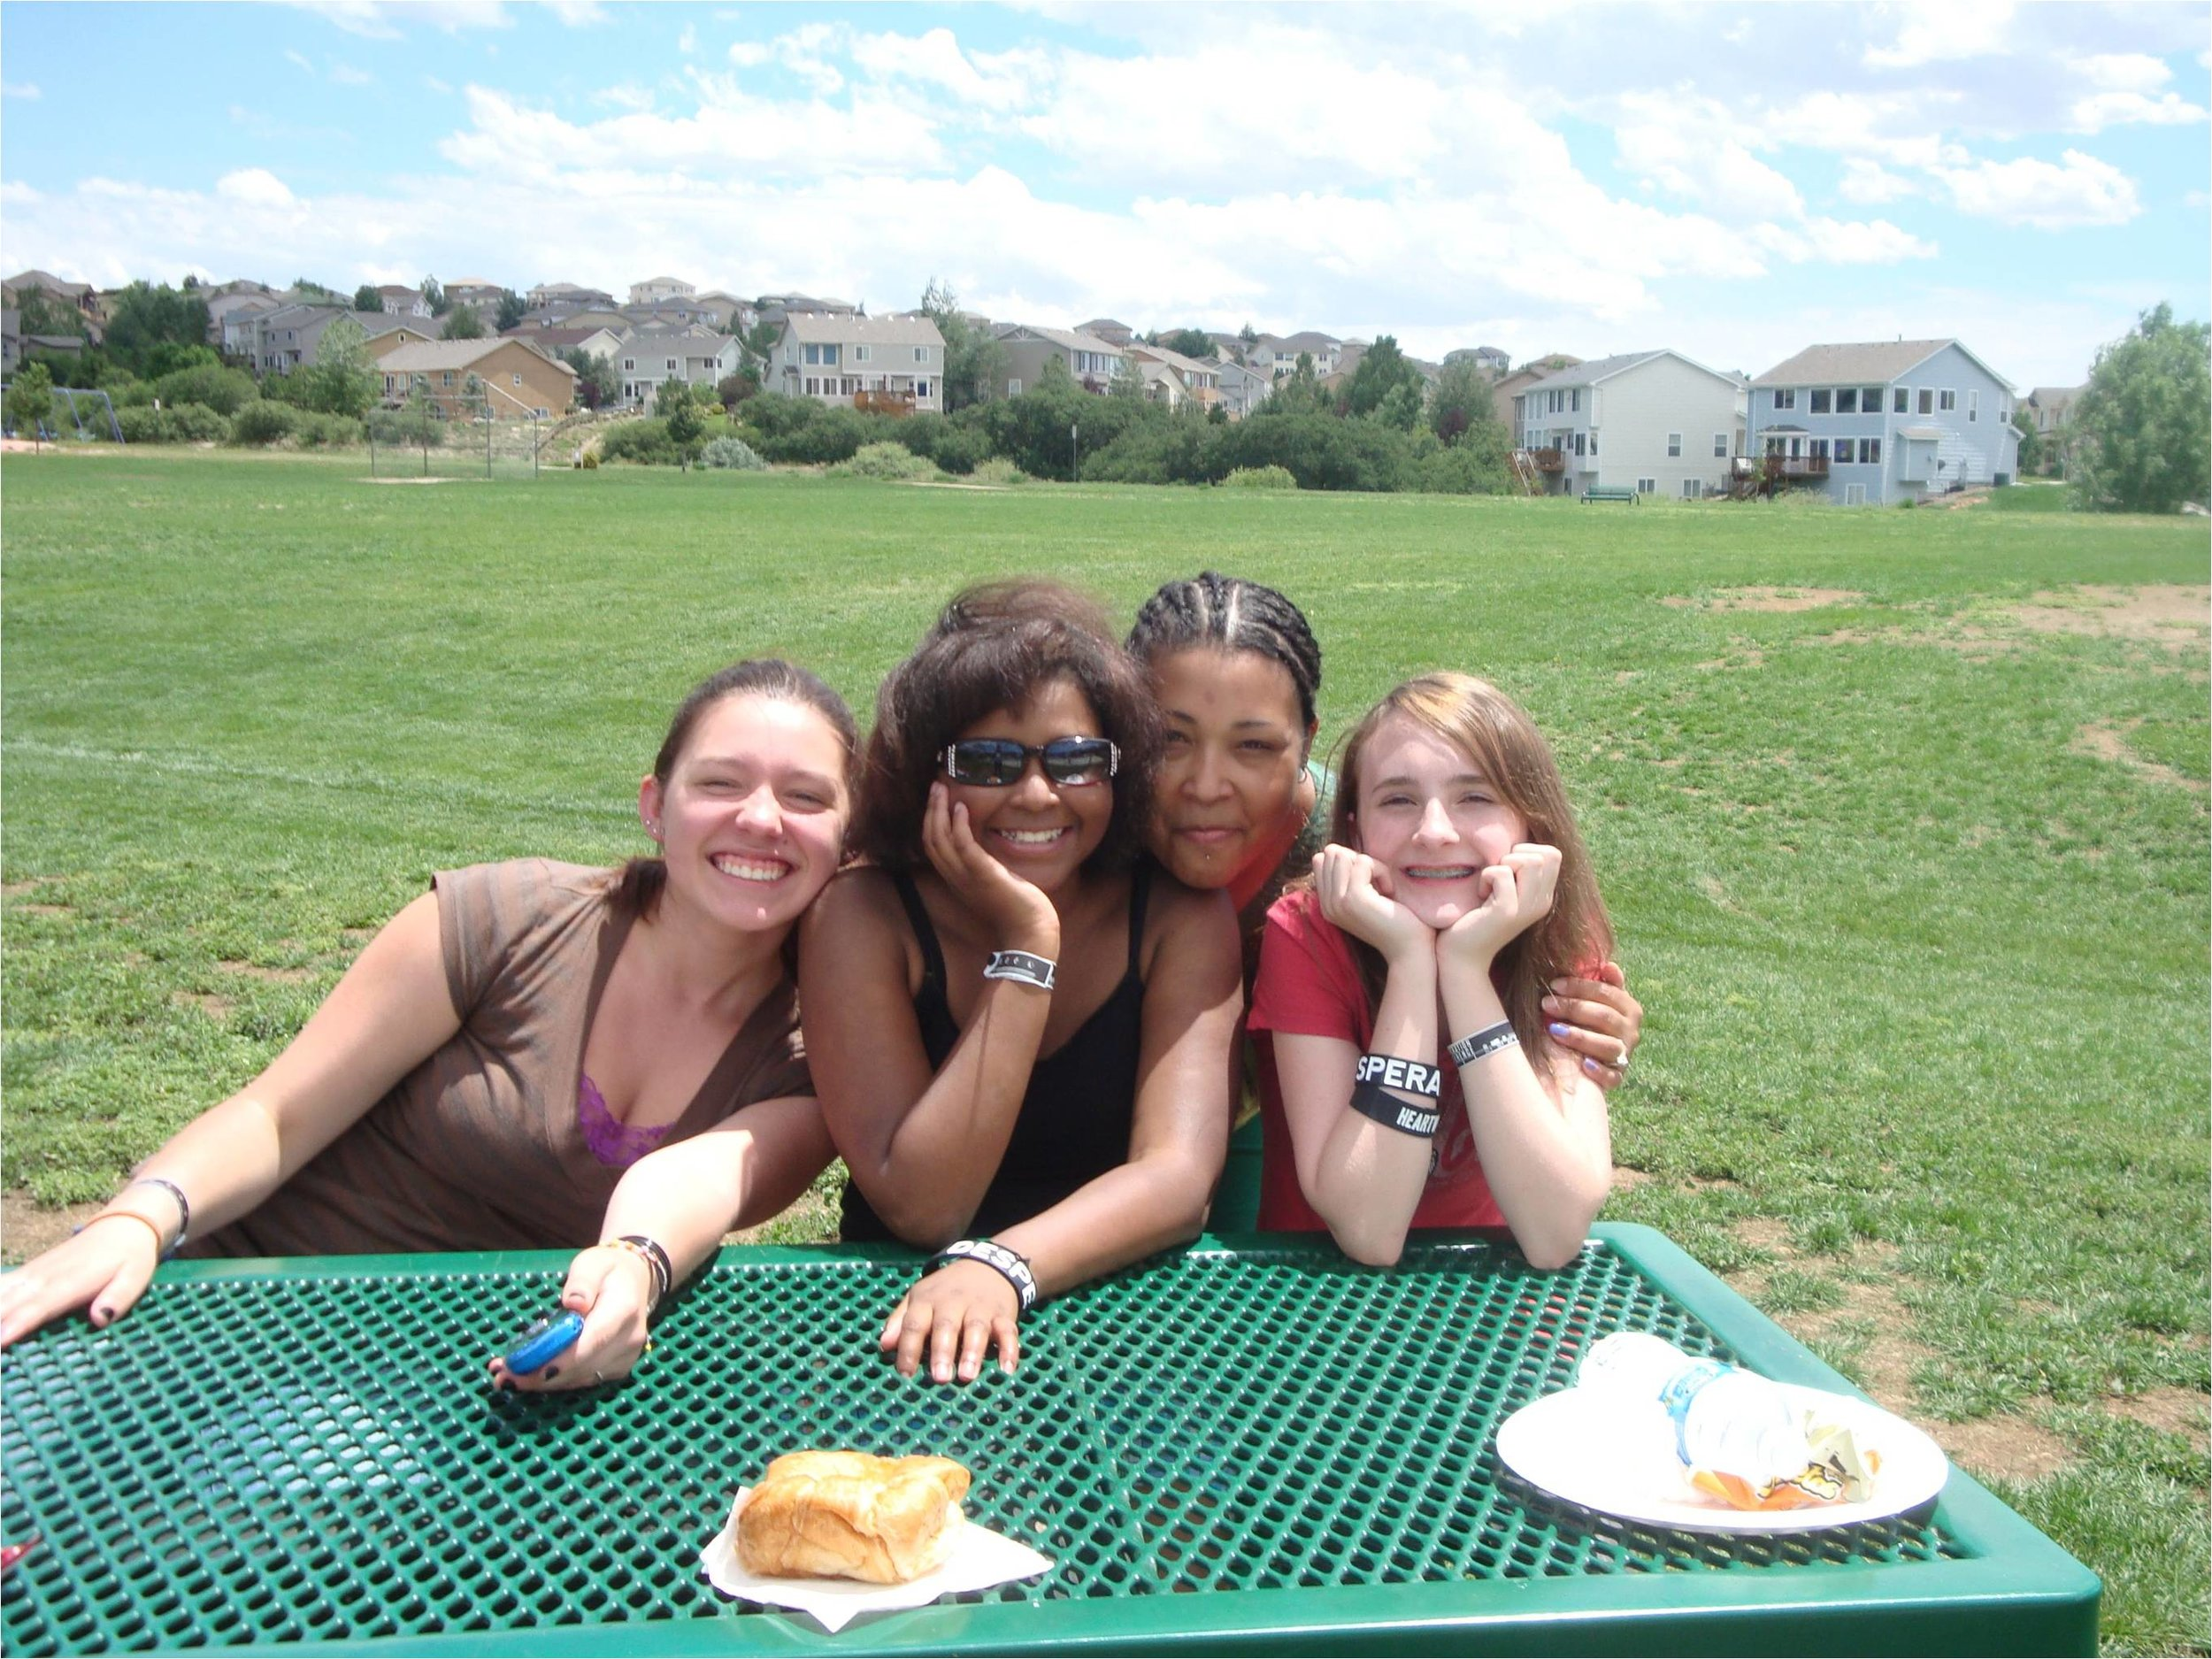 Desp youth picnic.jpg